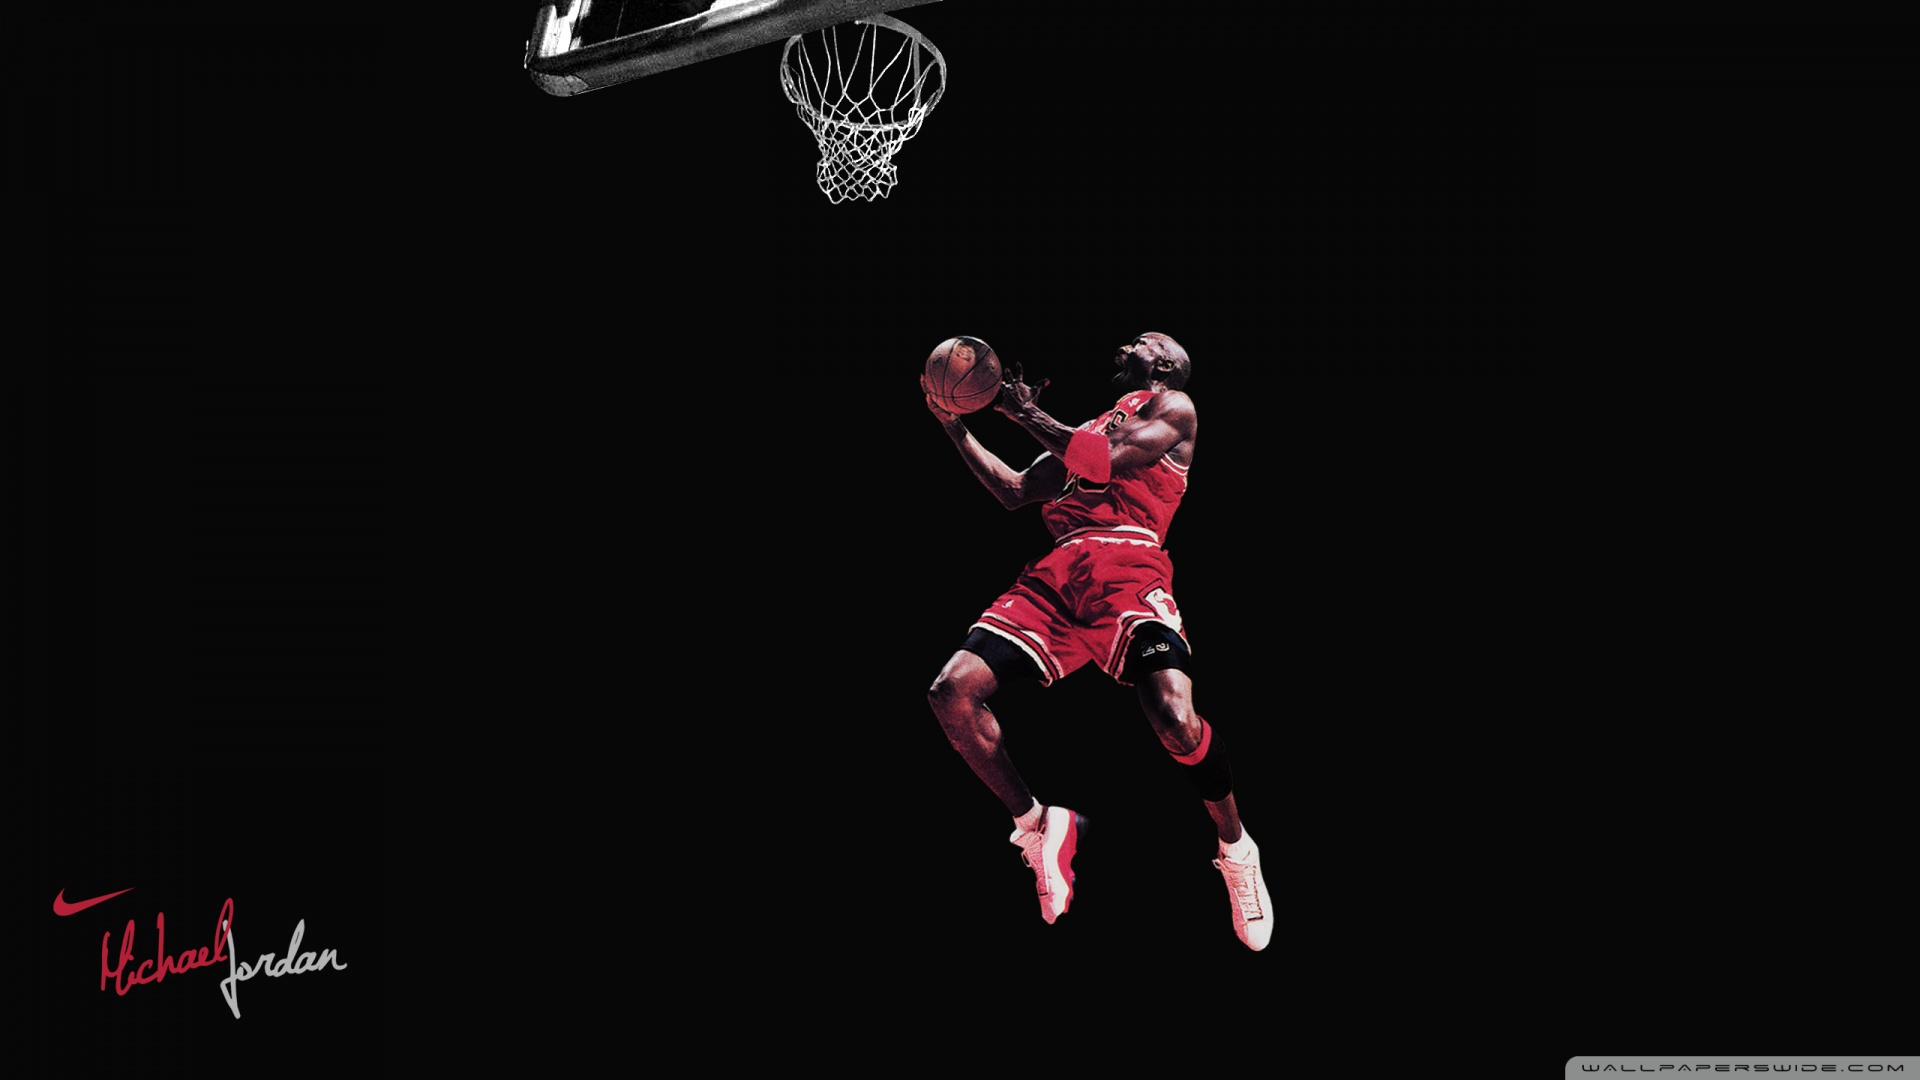 Wallpaper Michael Jordan